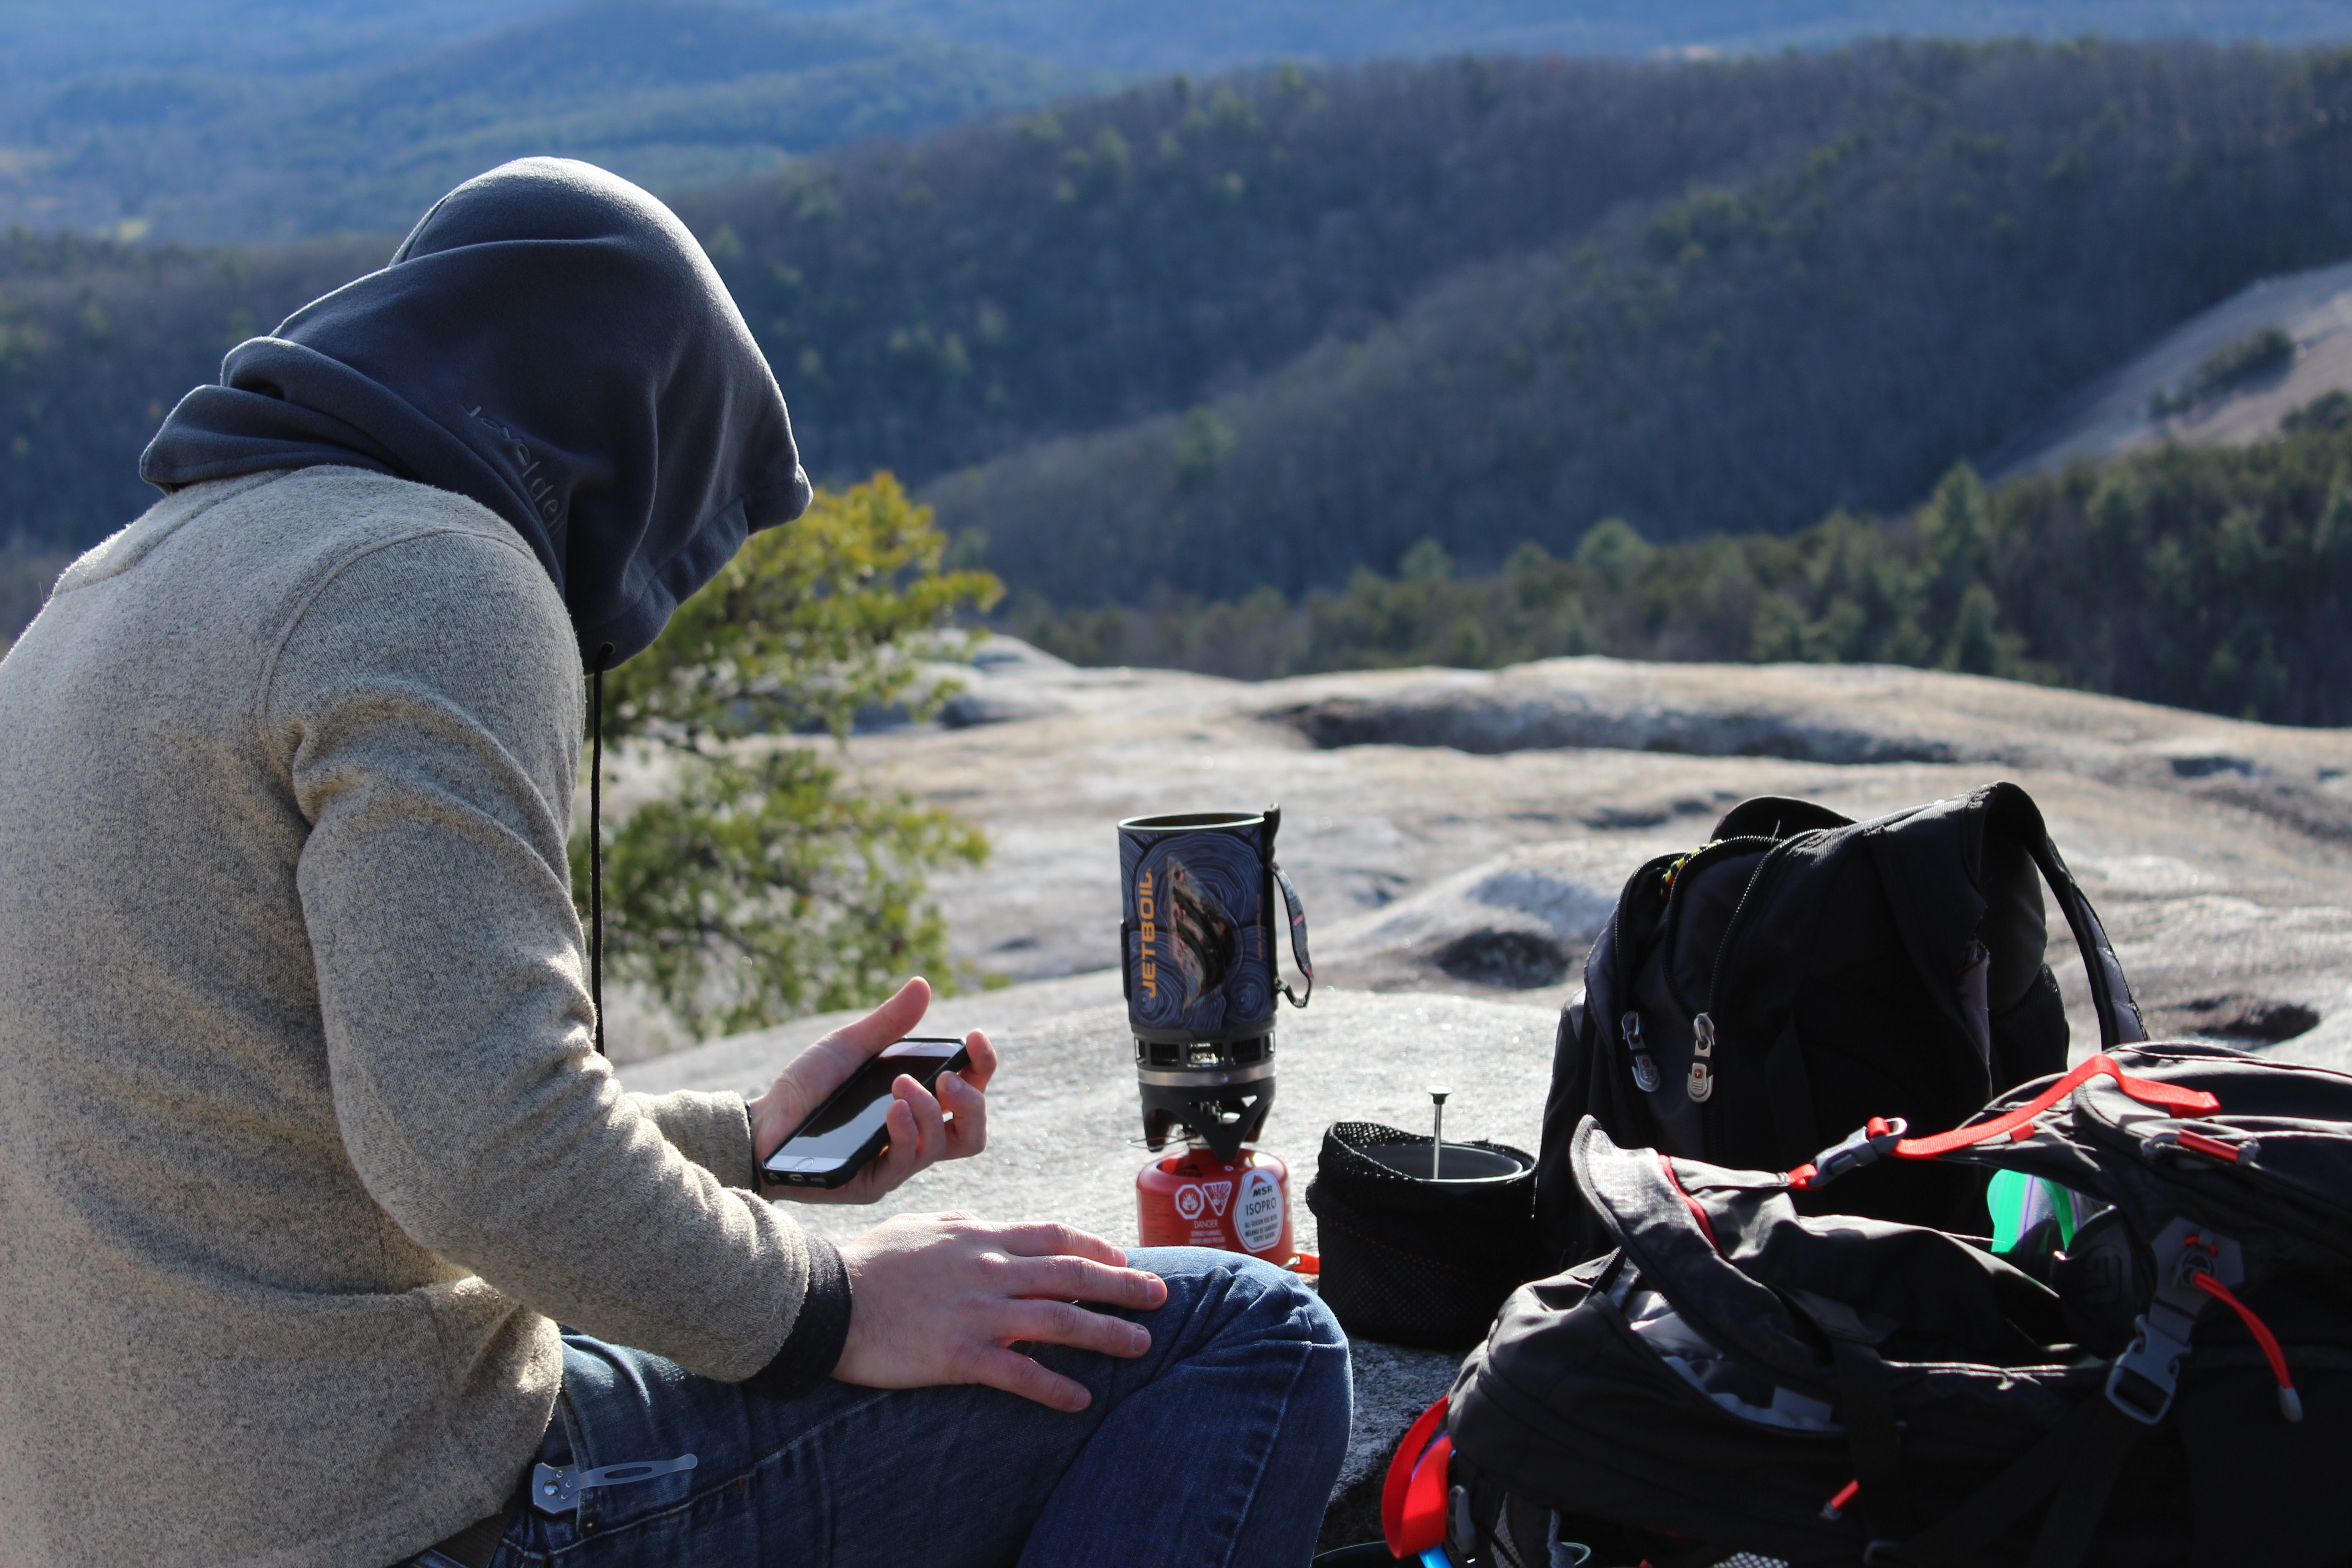 man wearing gray hooded jacket near top of mountain while using smartphone during daytime